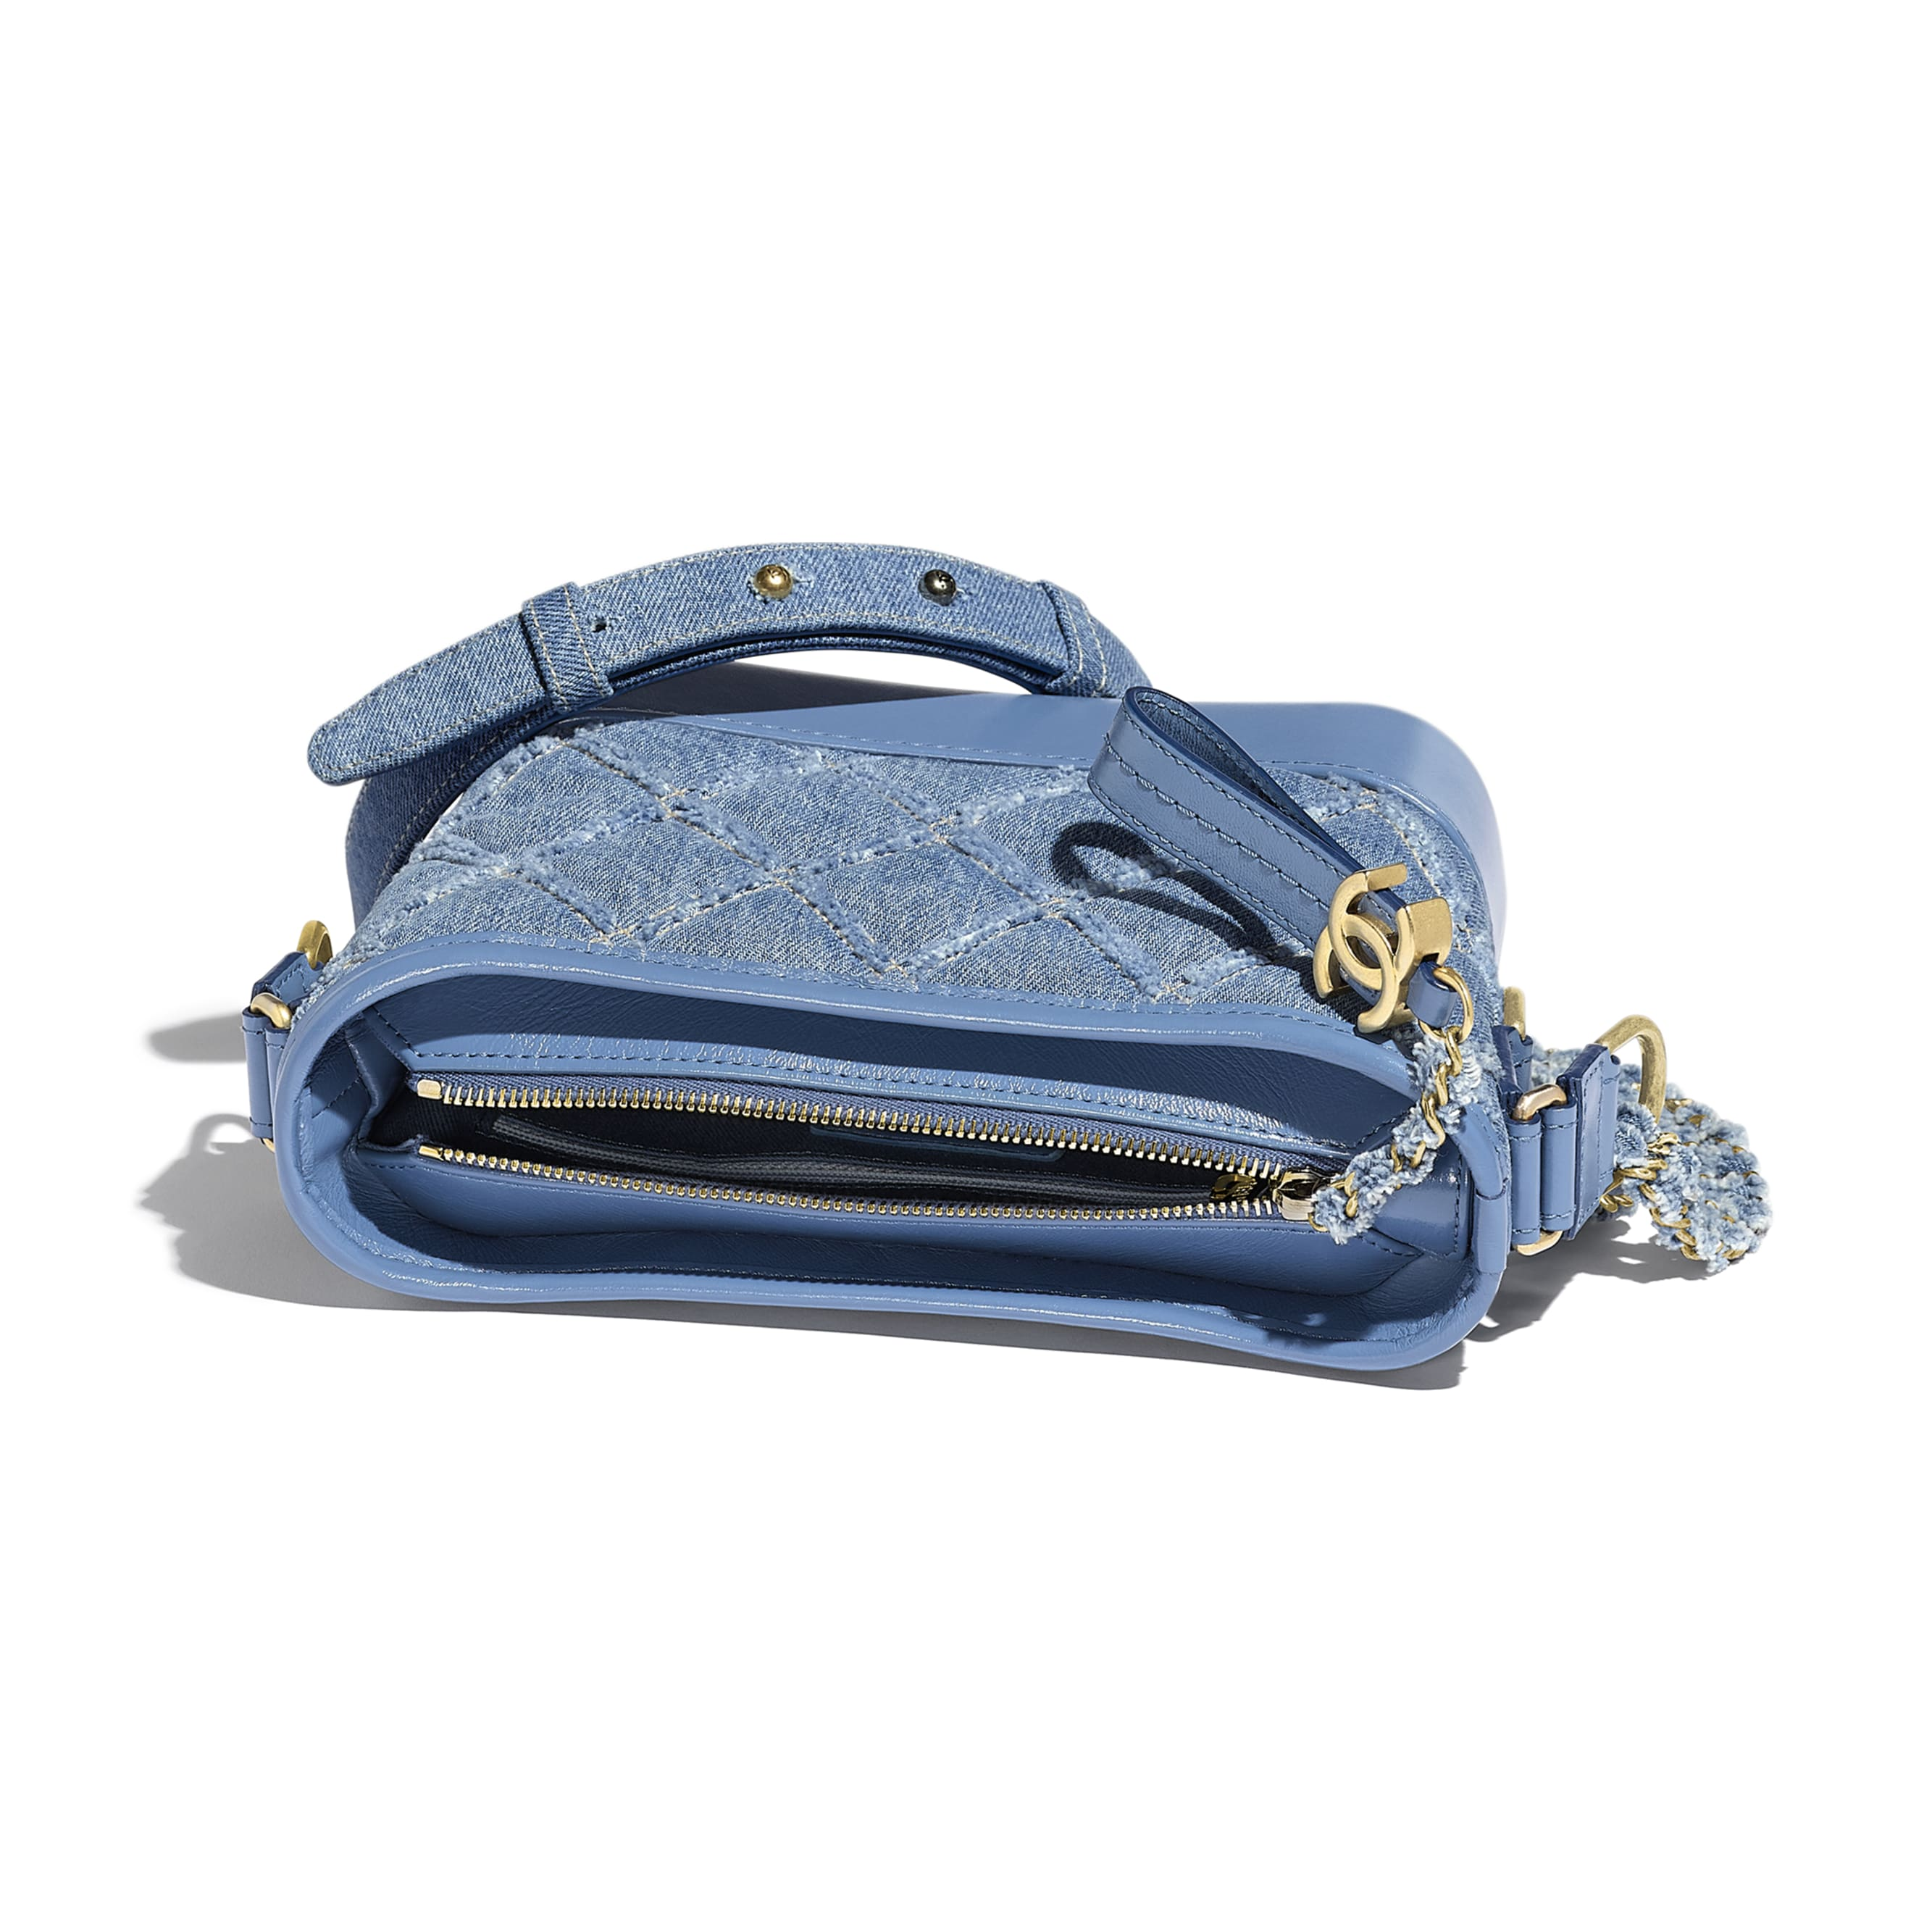 CHANEL'S GABRIELLE Small Hobo Bag - Blue - Denim, Calfskin, Gold-Tone, Silver-Tone & Ruthenium-Finish Metal - Other view - see standard sized version